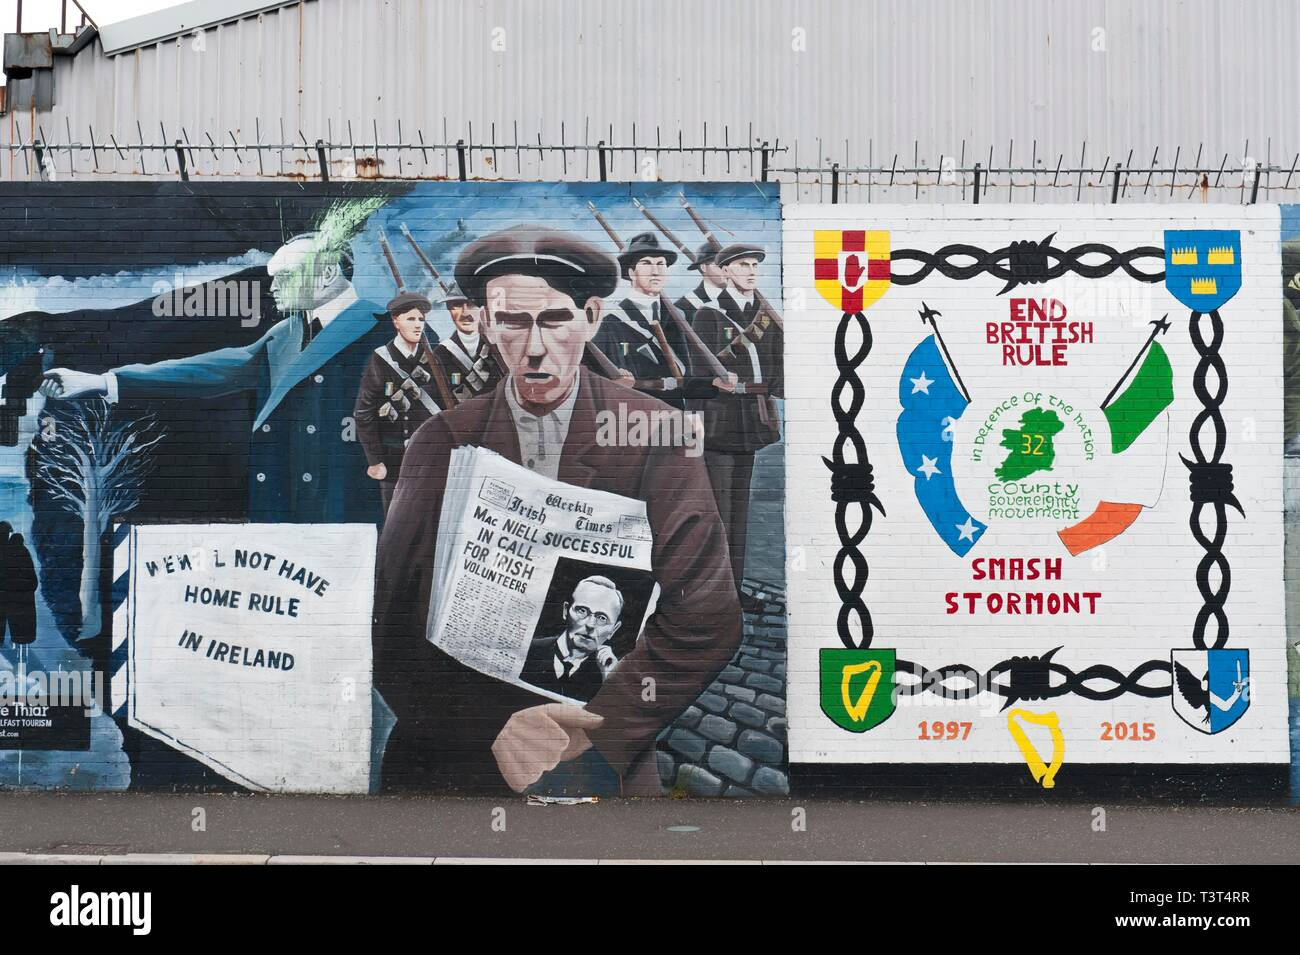 End British Rule, political graffiti on wall in West Belfast recalling the civil war between Protestants and Catholics, Belfast, County Antrim - Stock Image